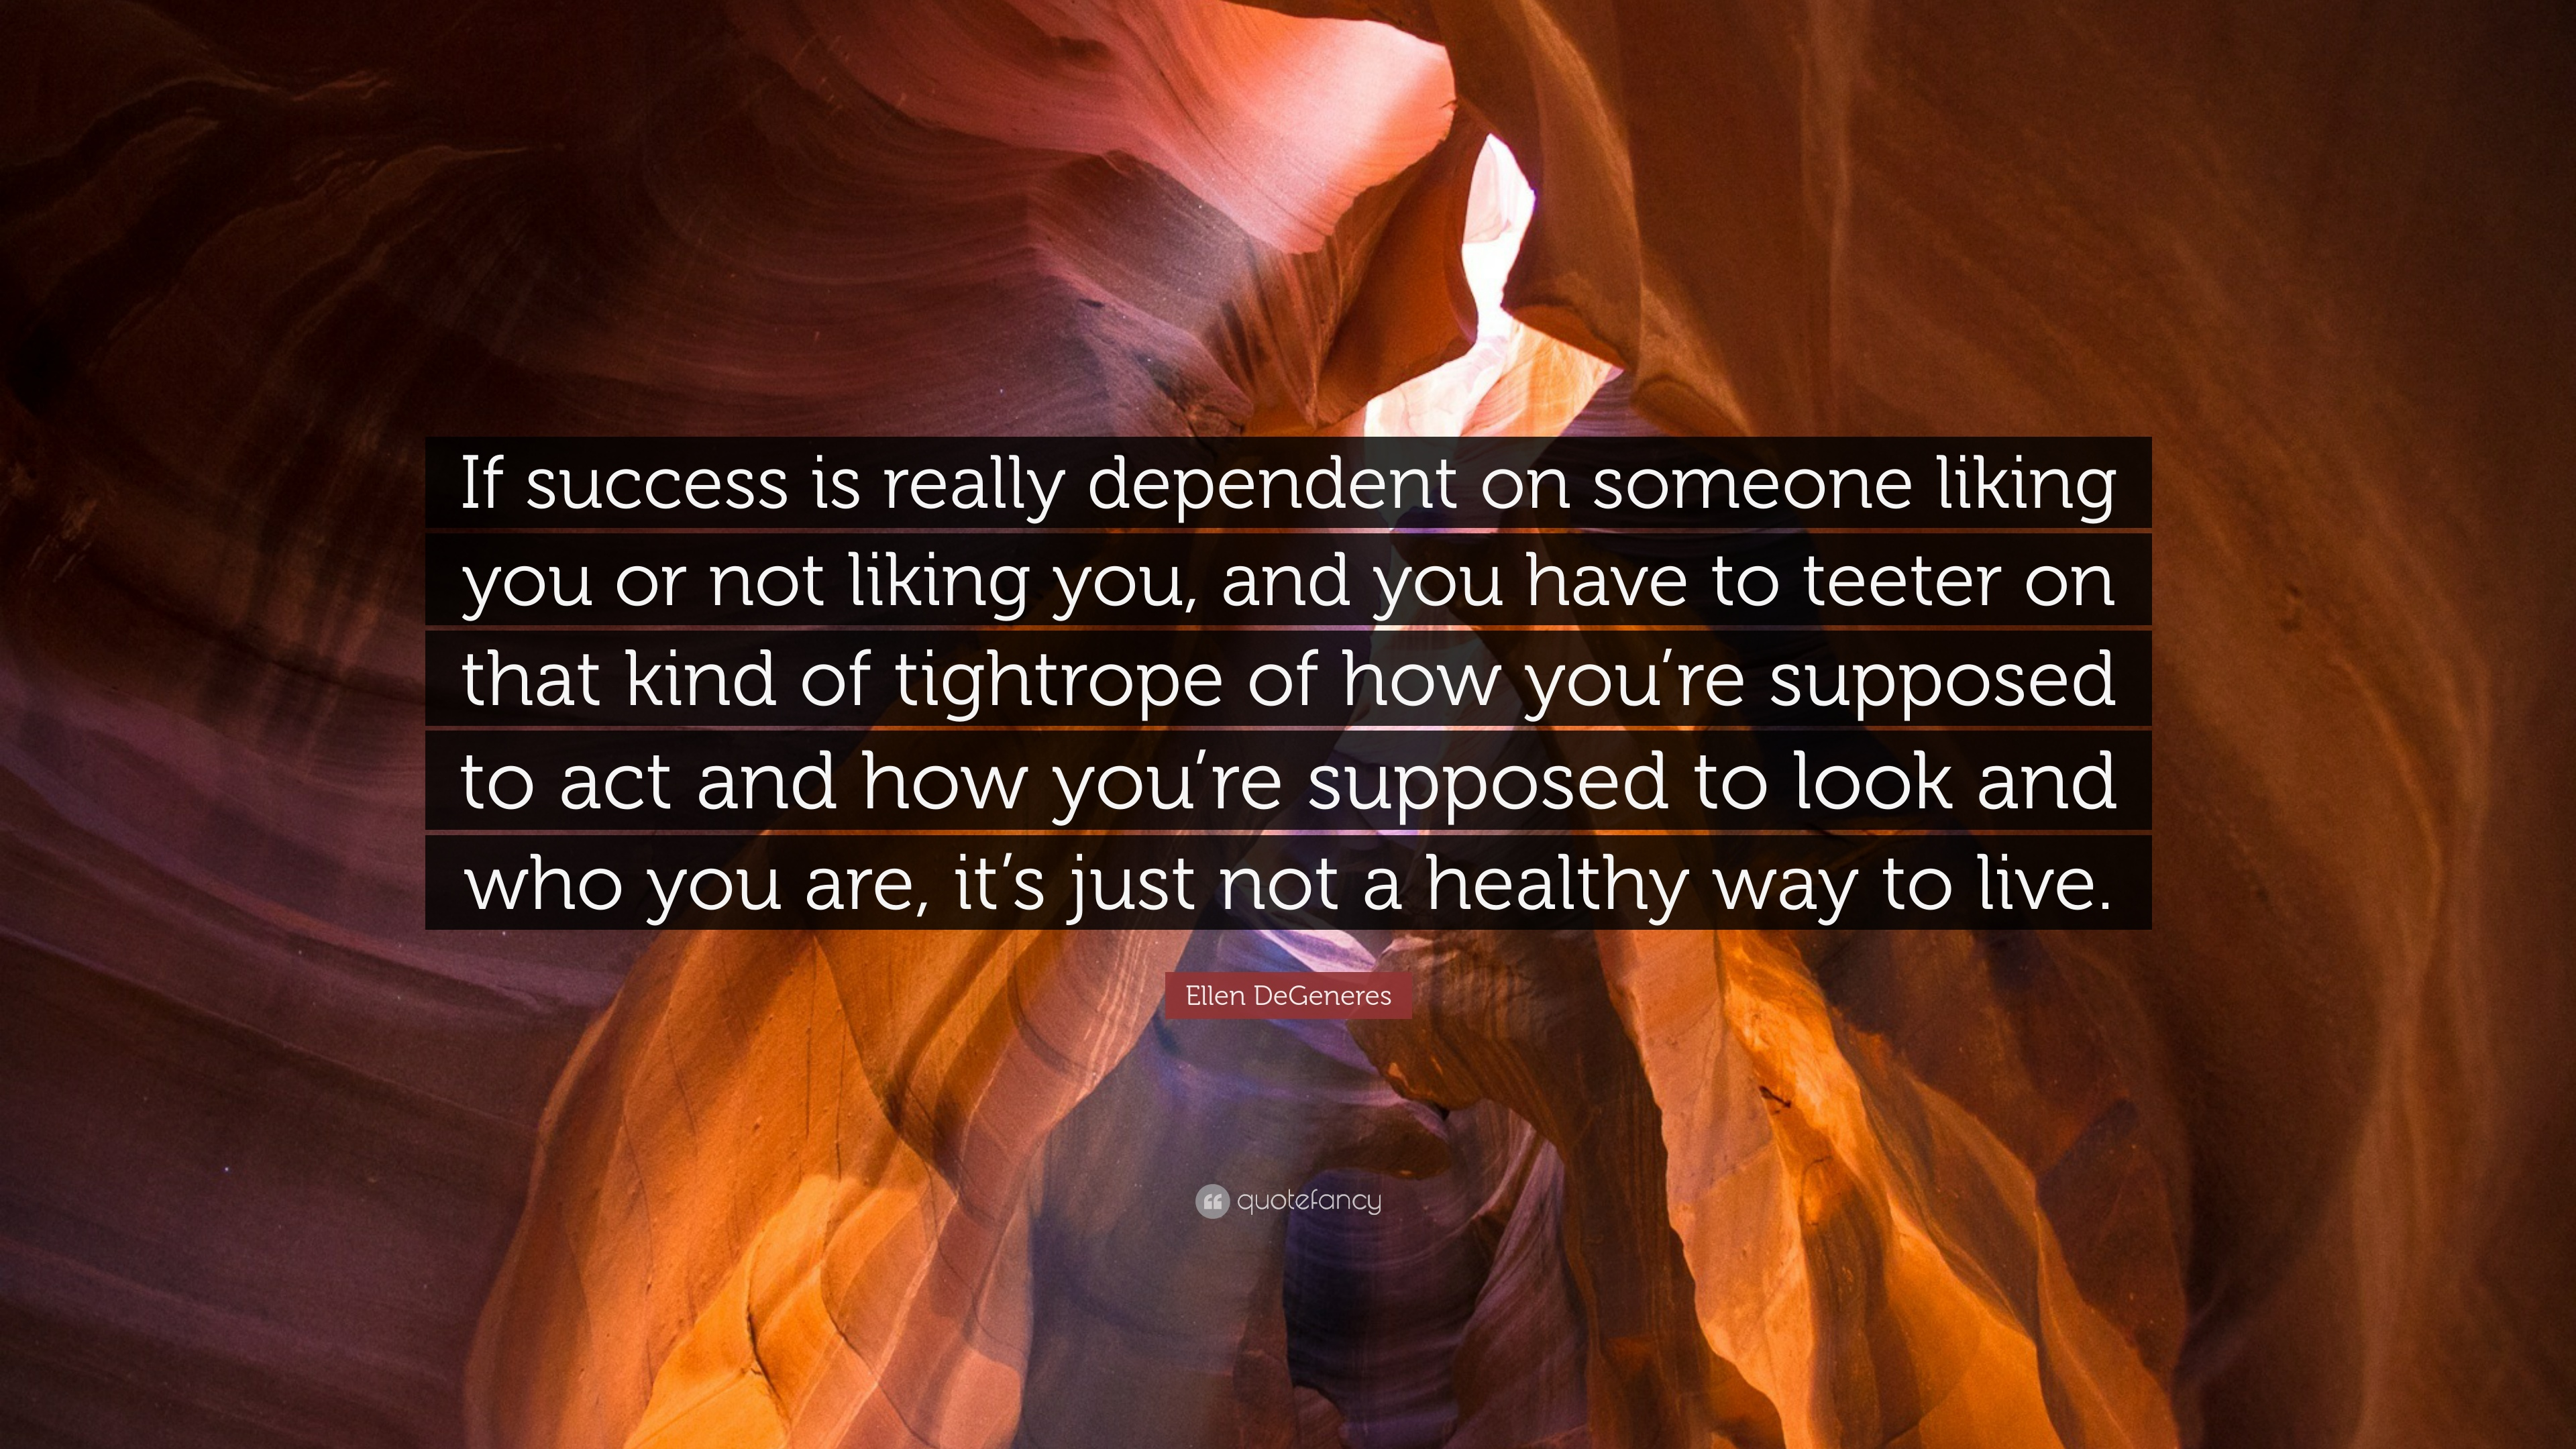 ellen degeneres quote if success is really dependent on someone